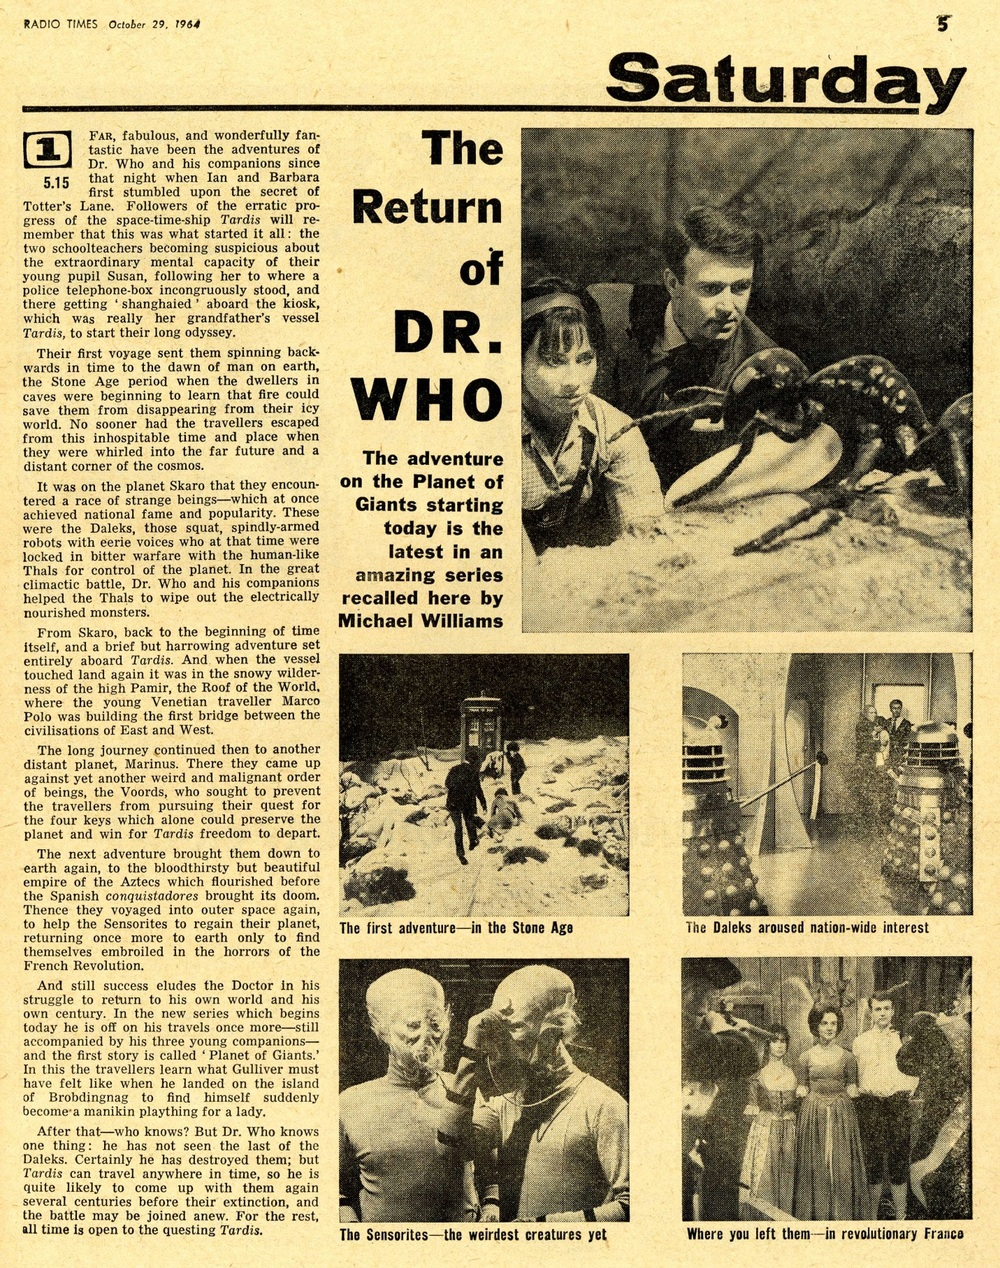 Radio Times. Article covering the start of Season 2 and Planet of Giants, 31 October - 6 November 1964